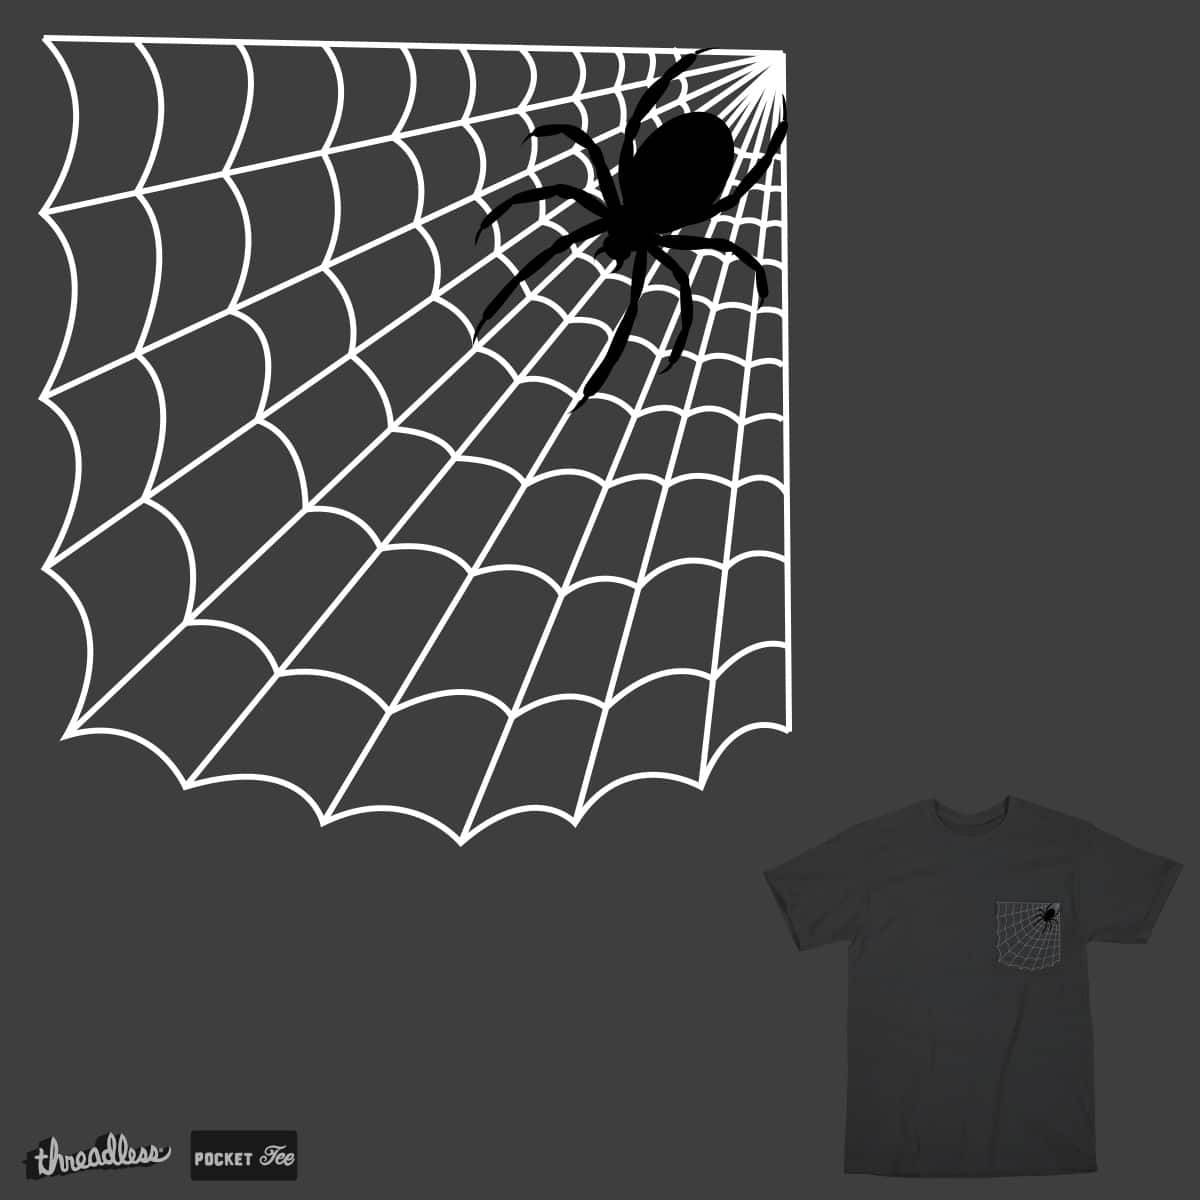 Oh no a Spider!!! by Theo86 on Threadless